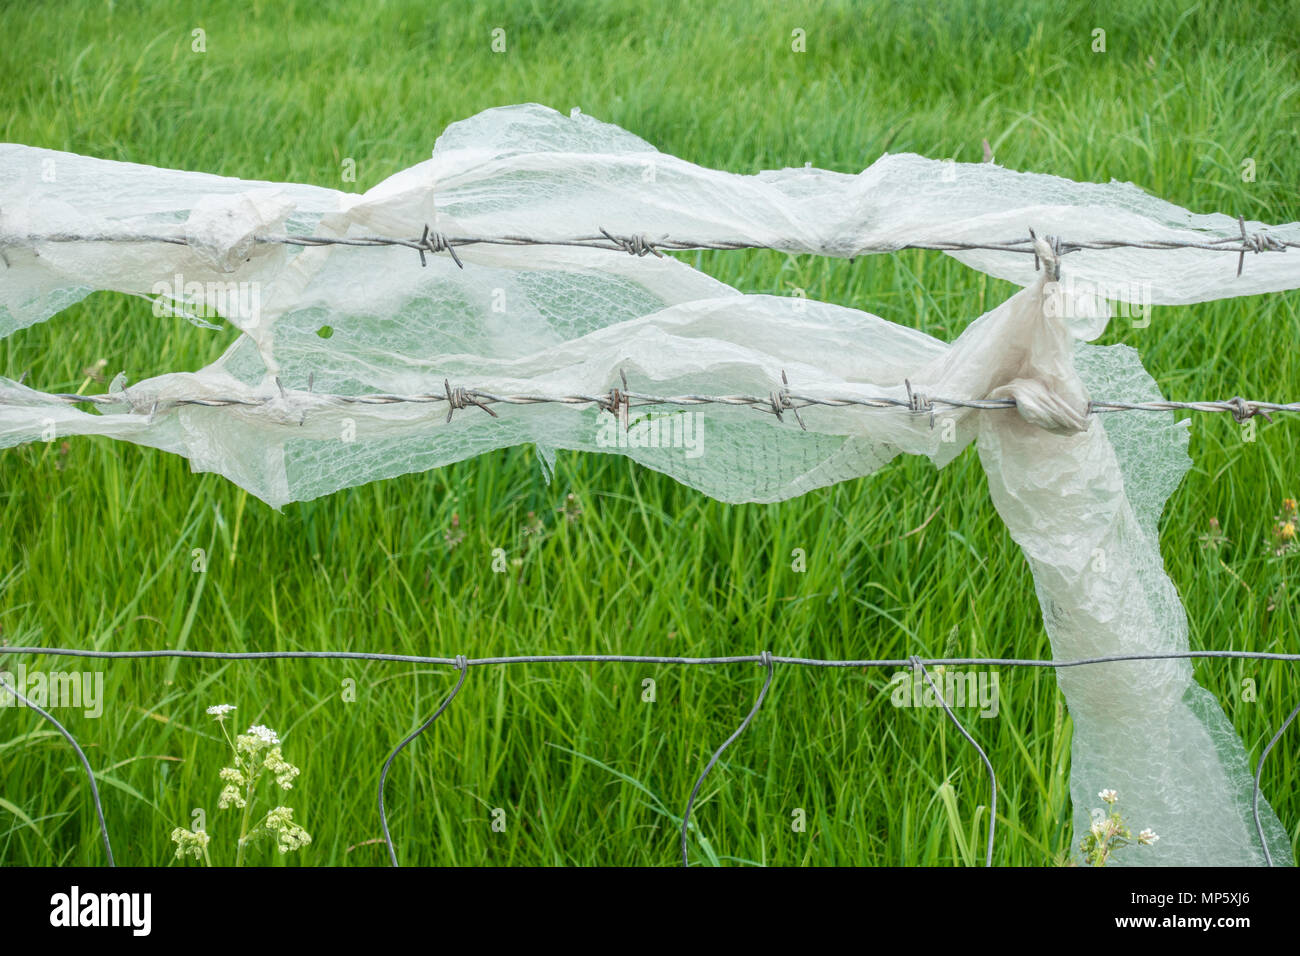 Plastic packaging (bubble wrap) on barbed wire fence. England. UK Stock Photo